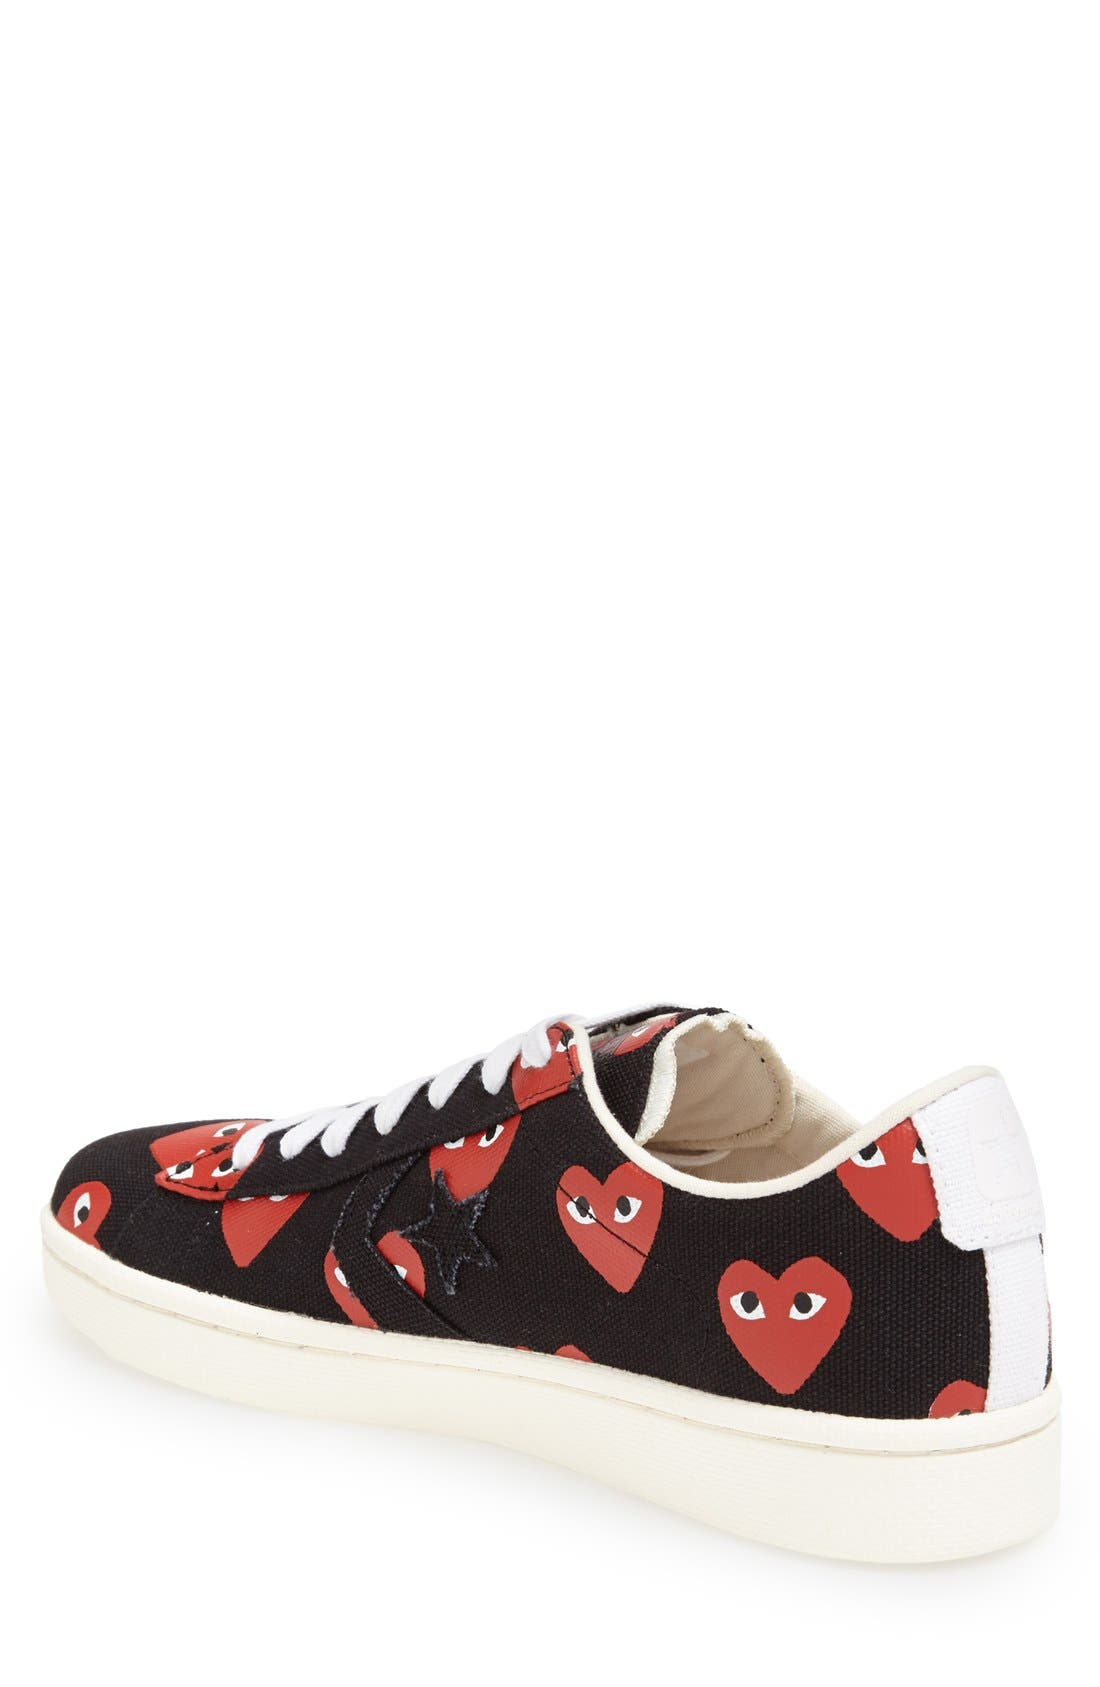 PLAY x Converse Chuck Taylor<sup>®</sup> Low Top Sneaker,                             Alternate thumbnail 2, color,                             001